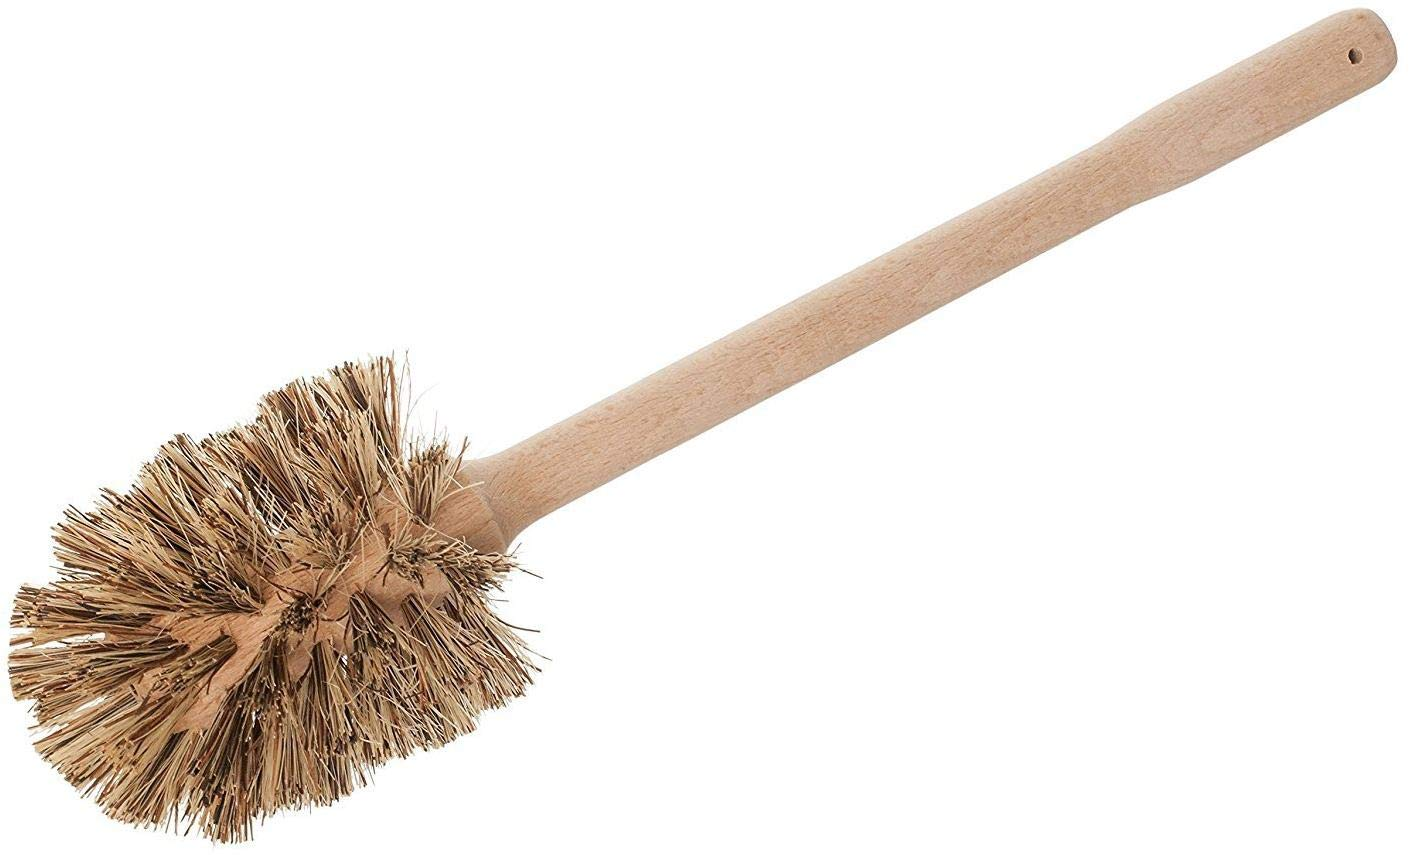 REDECKER Union Fiber Toilet Brush with Untreated Beechwood Handle, Durable Natural Stiff Bristles, 15'', Made in Germany by REDECKER